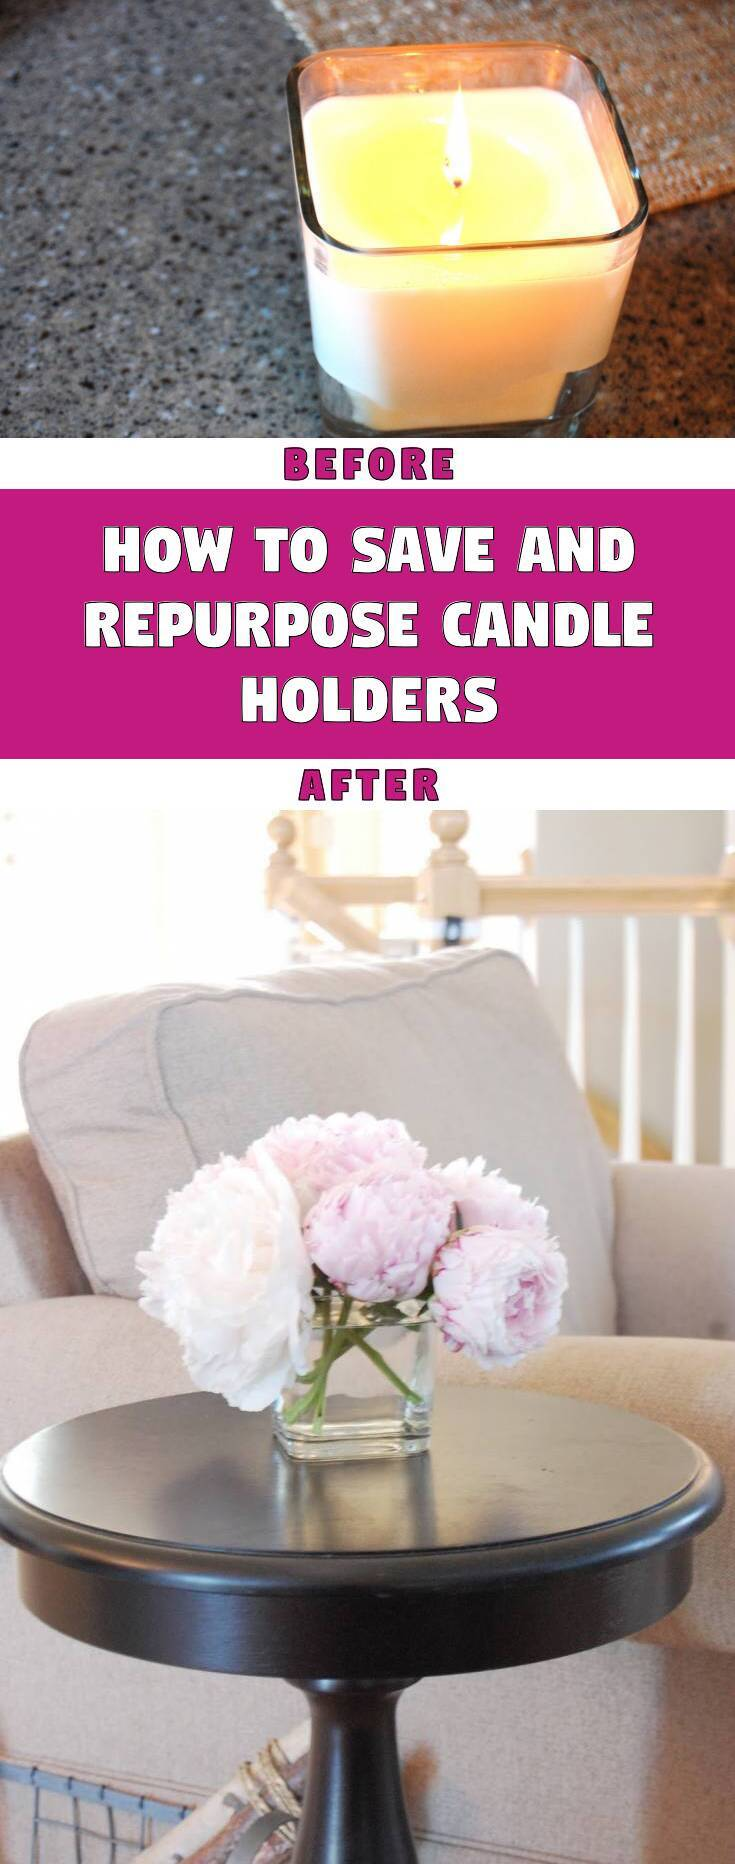 How to save and repurpose candle holders